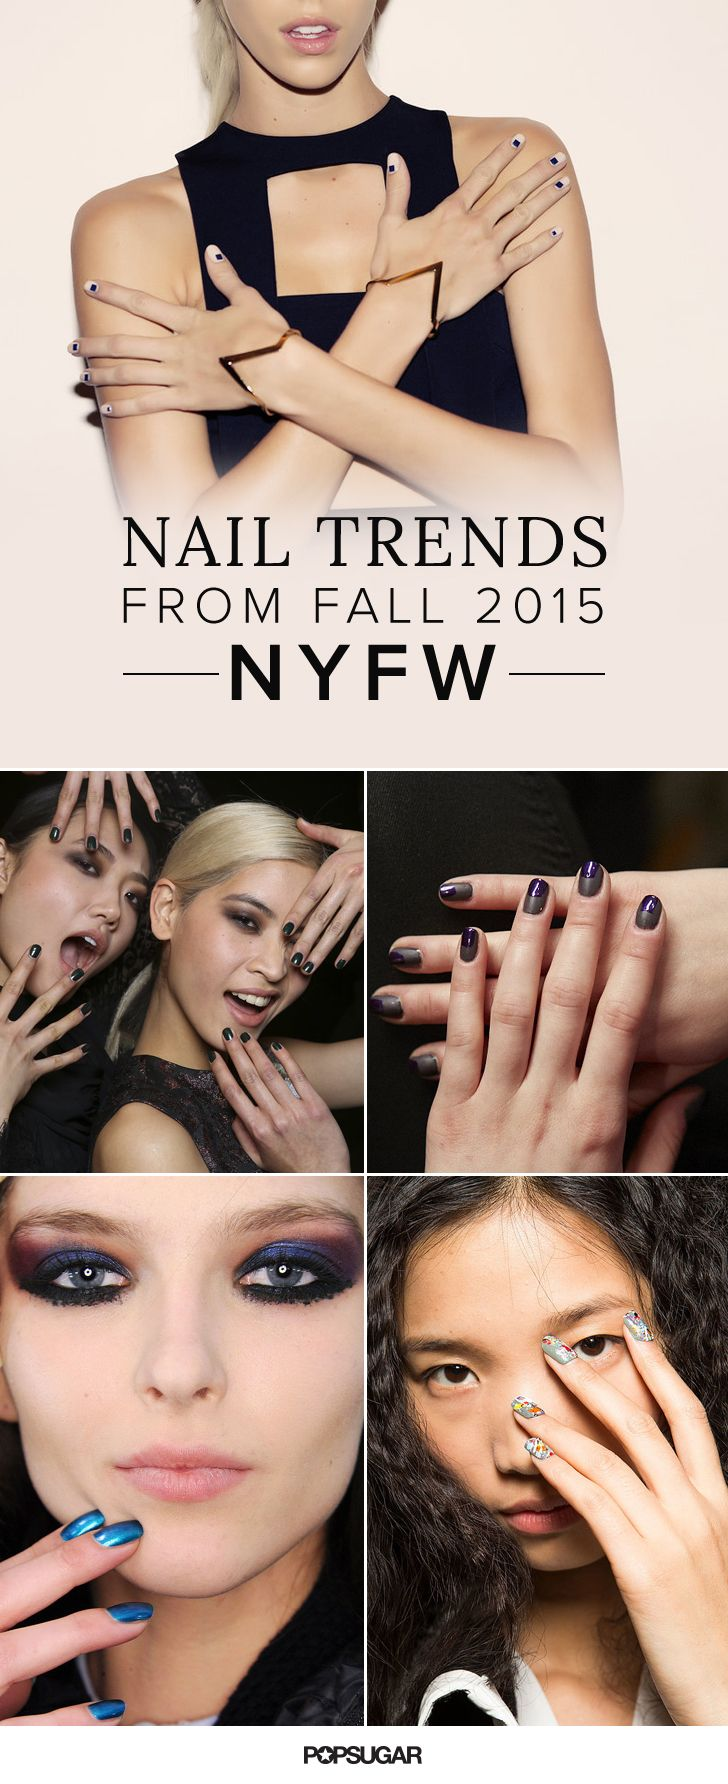 Start practicing! These are the nail art trends everyone will be wearing this Fall.